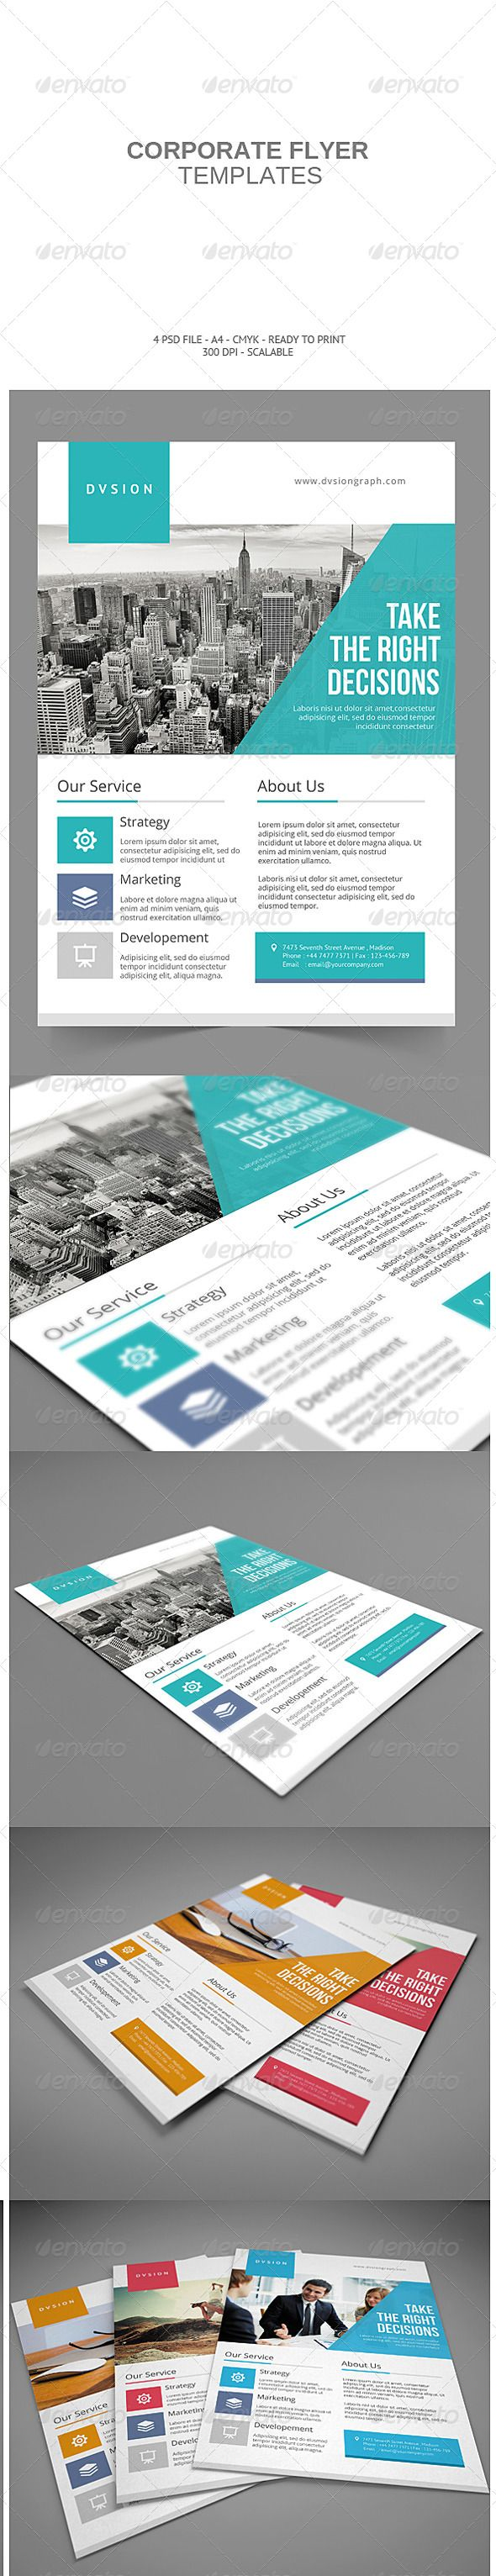 Corporate Flyer Template PSD | Buy and Download: http://graphicriver.net/item/corporate-flyer-/8160977?ref=ksioks